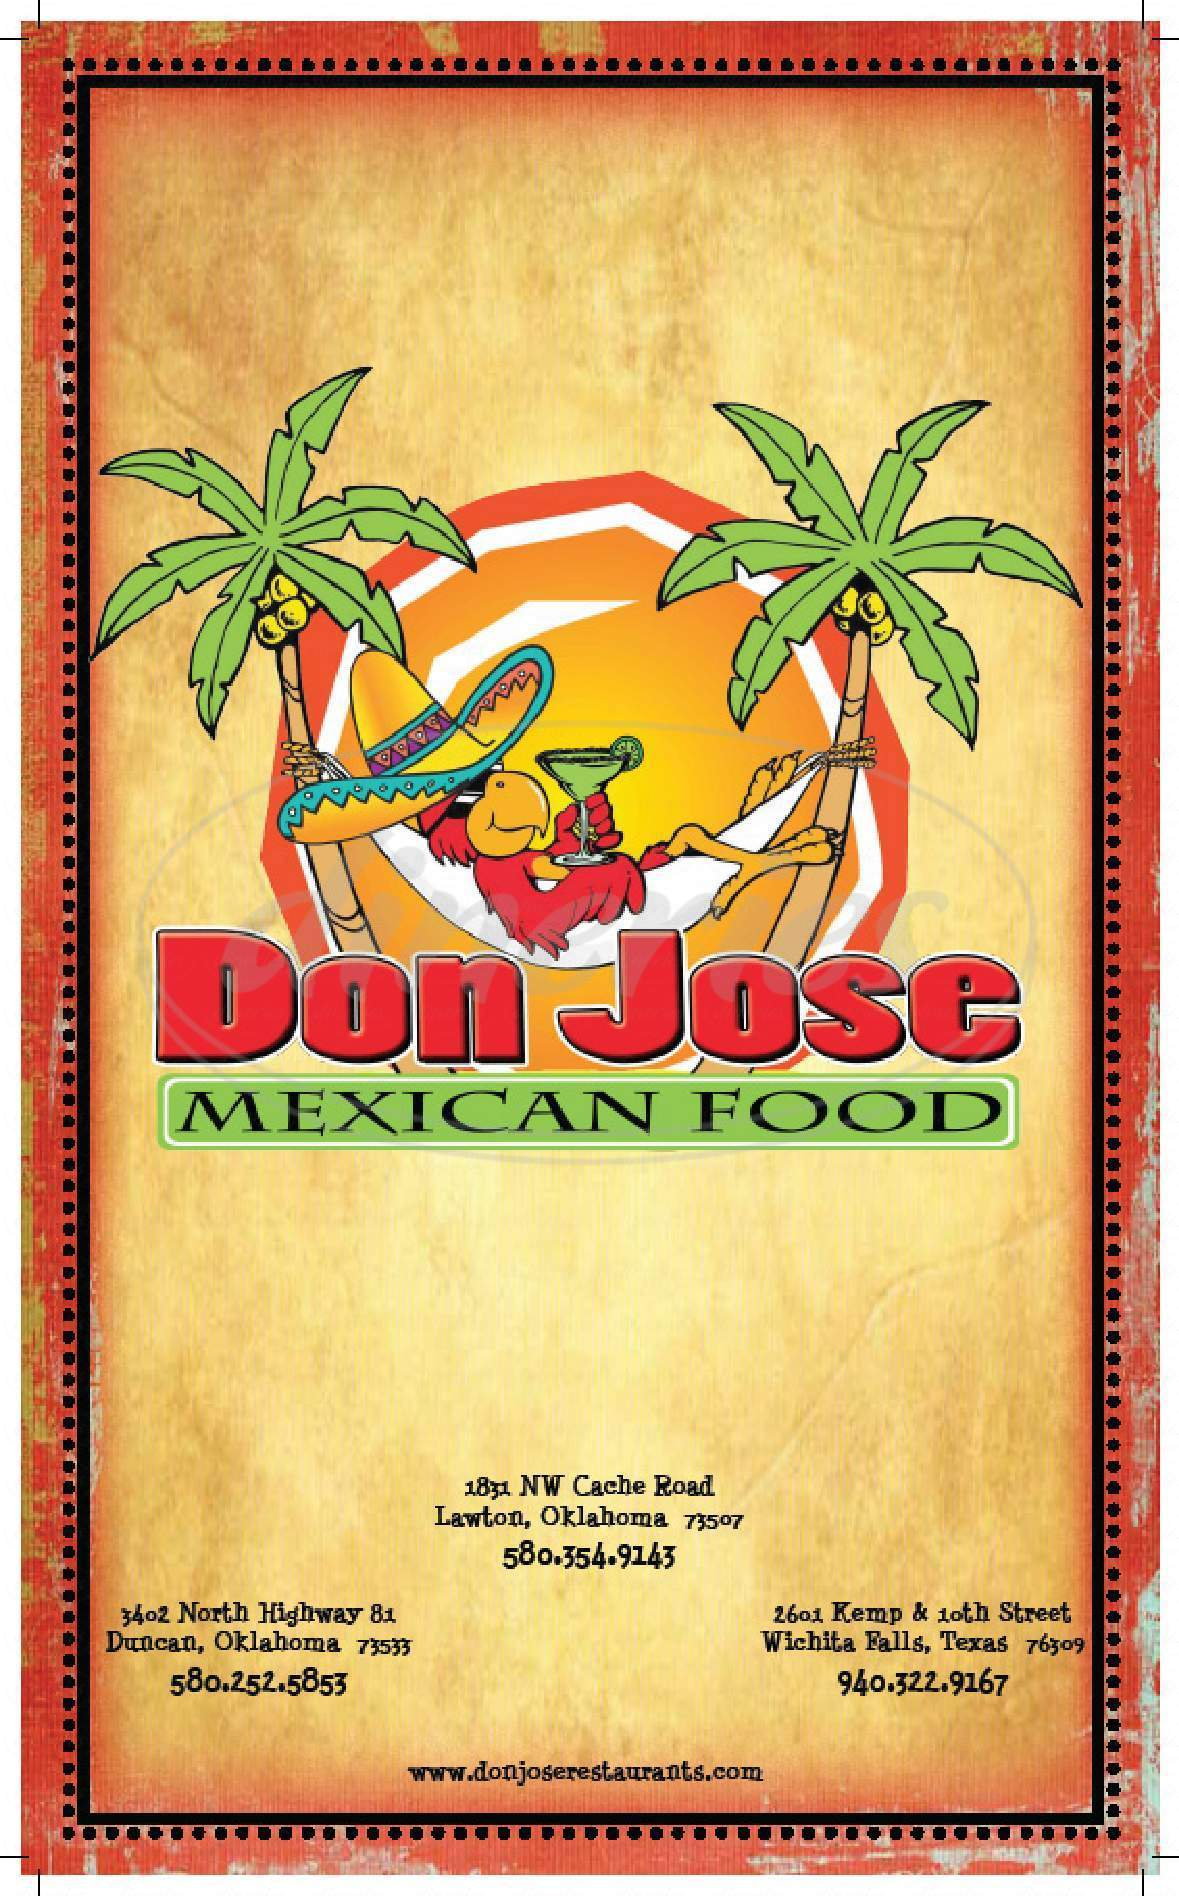 menu for Don Jose Mexican Restaurant of Wichita Falls